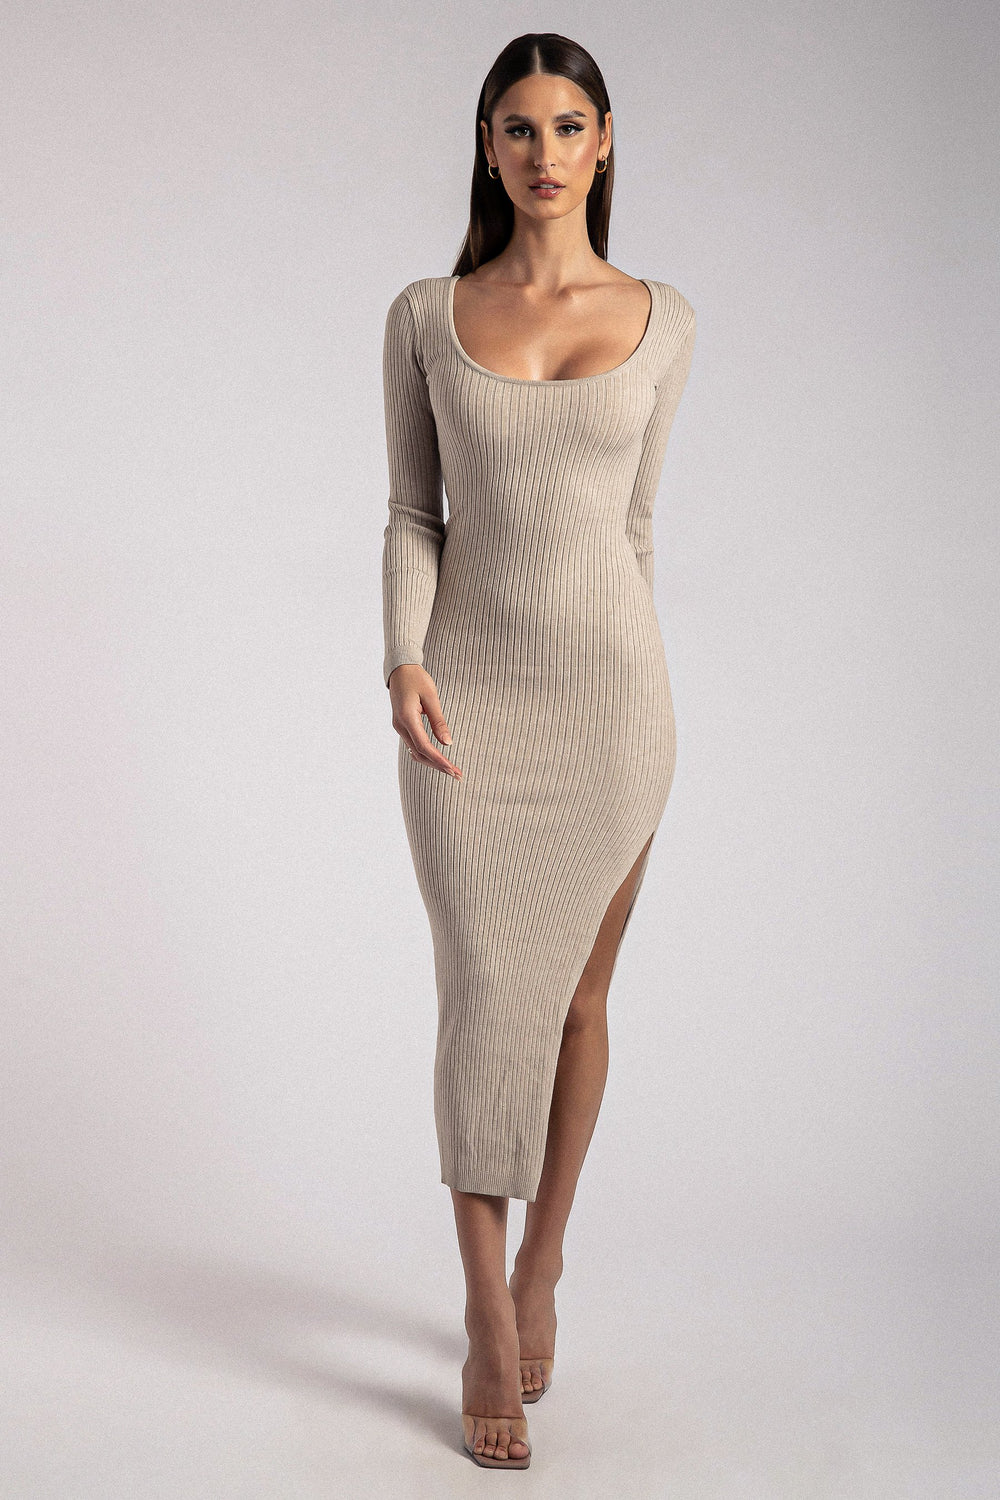 Cali Long Sleeve Scoop Neck Midi Dress - Taupe